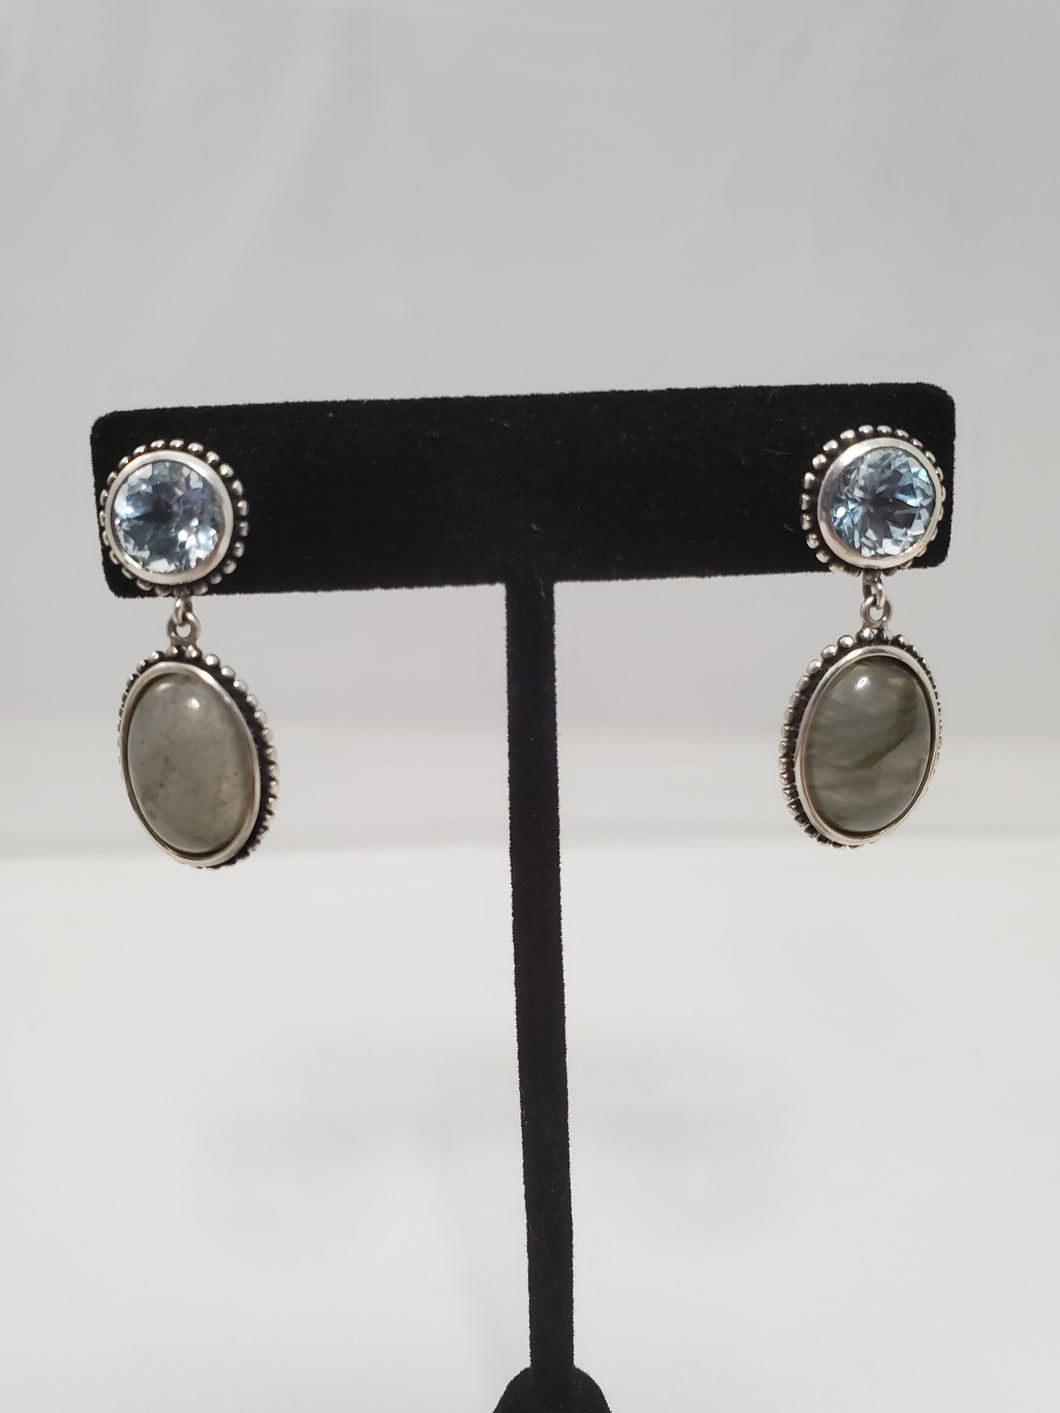 Vintage FD Balinese blue topaz and moonstone sterling silver earrings 925